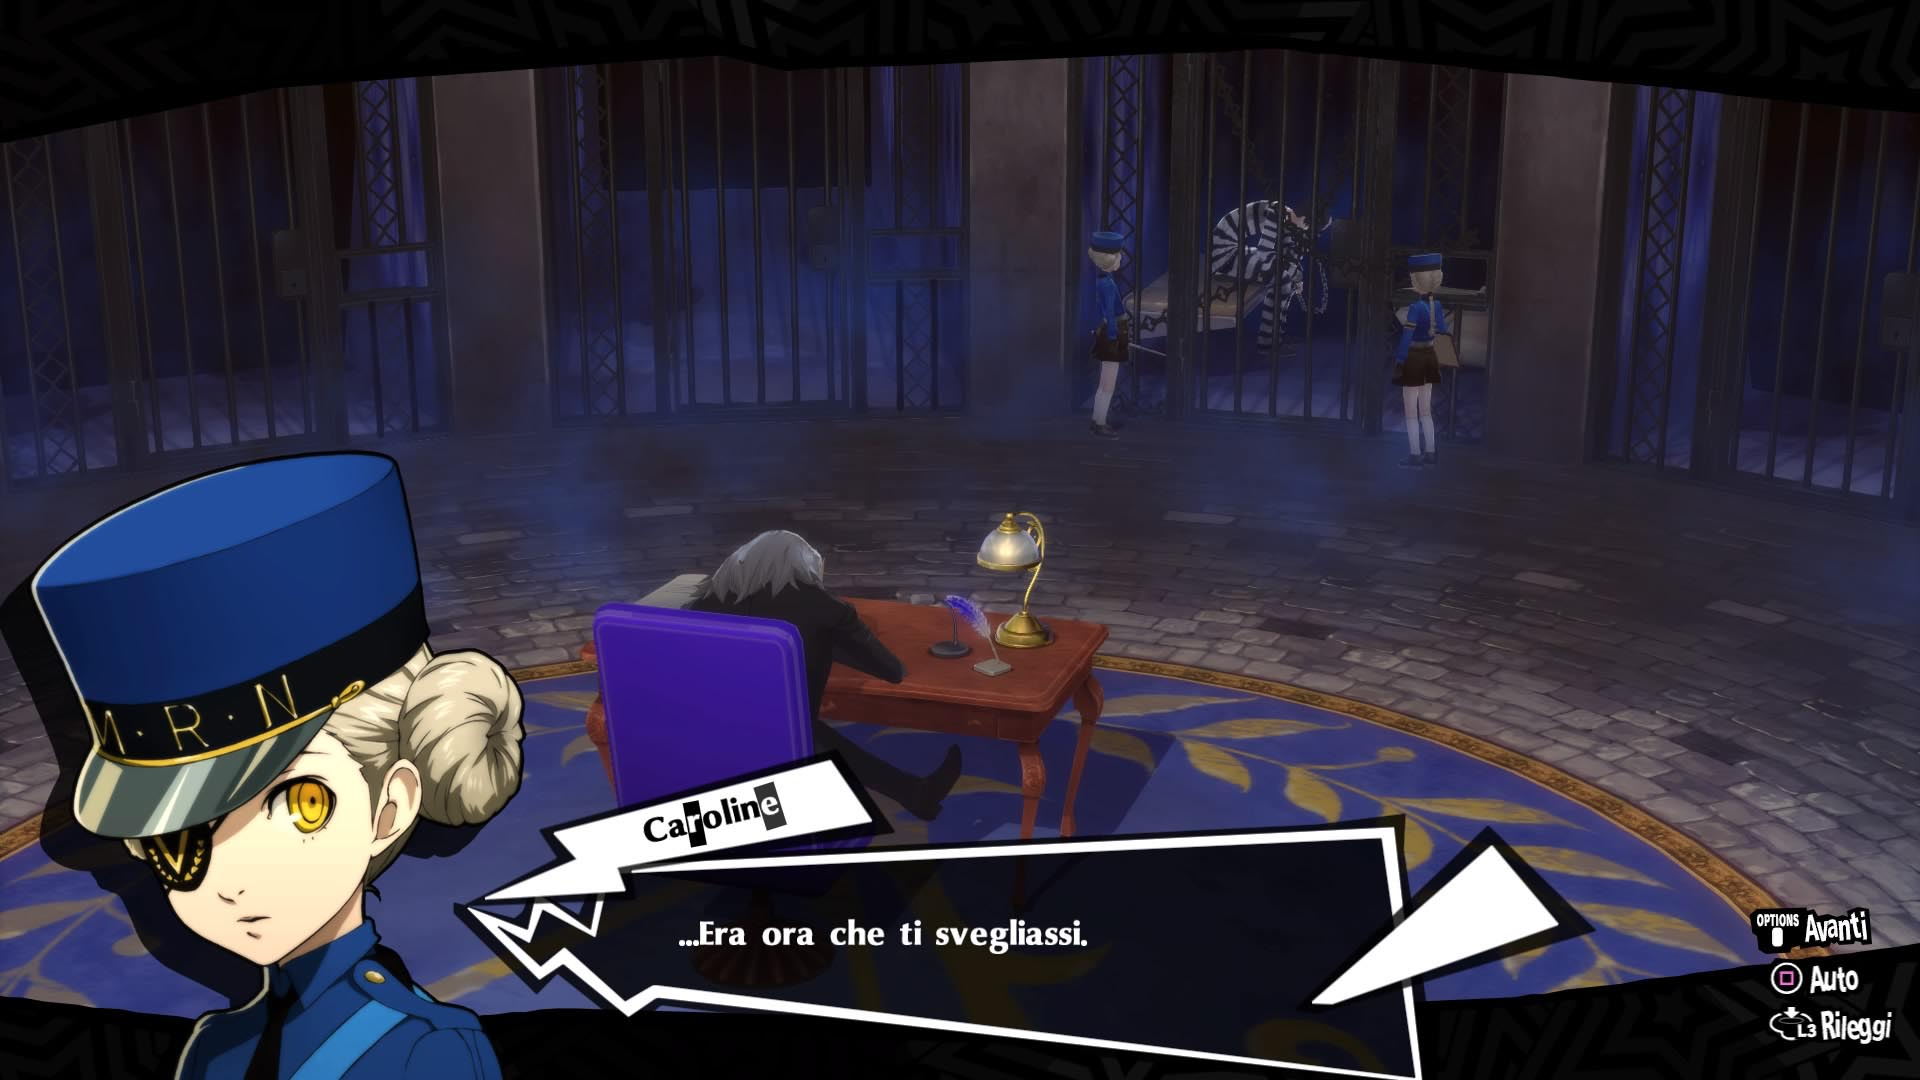 La Stanza di Velluto in Persona 5 Royal